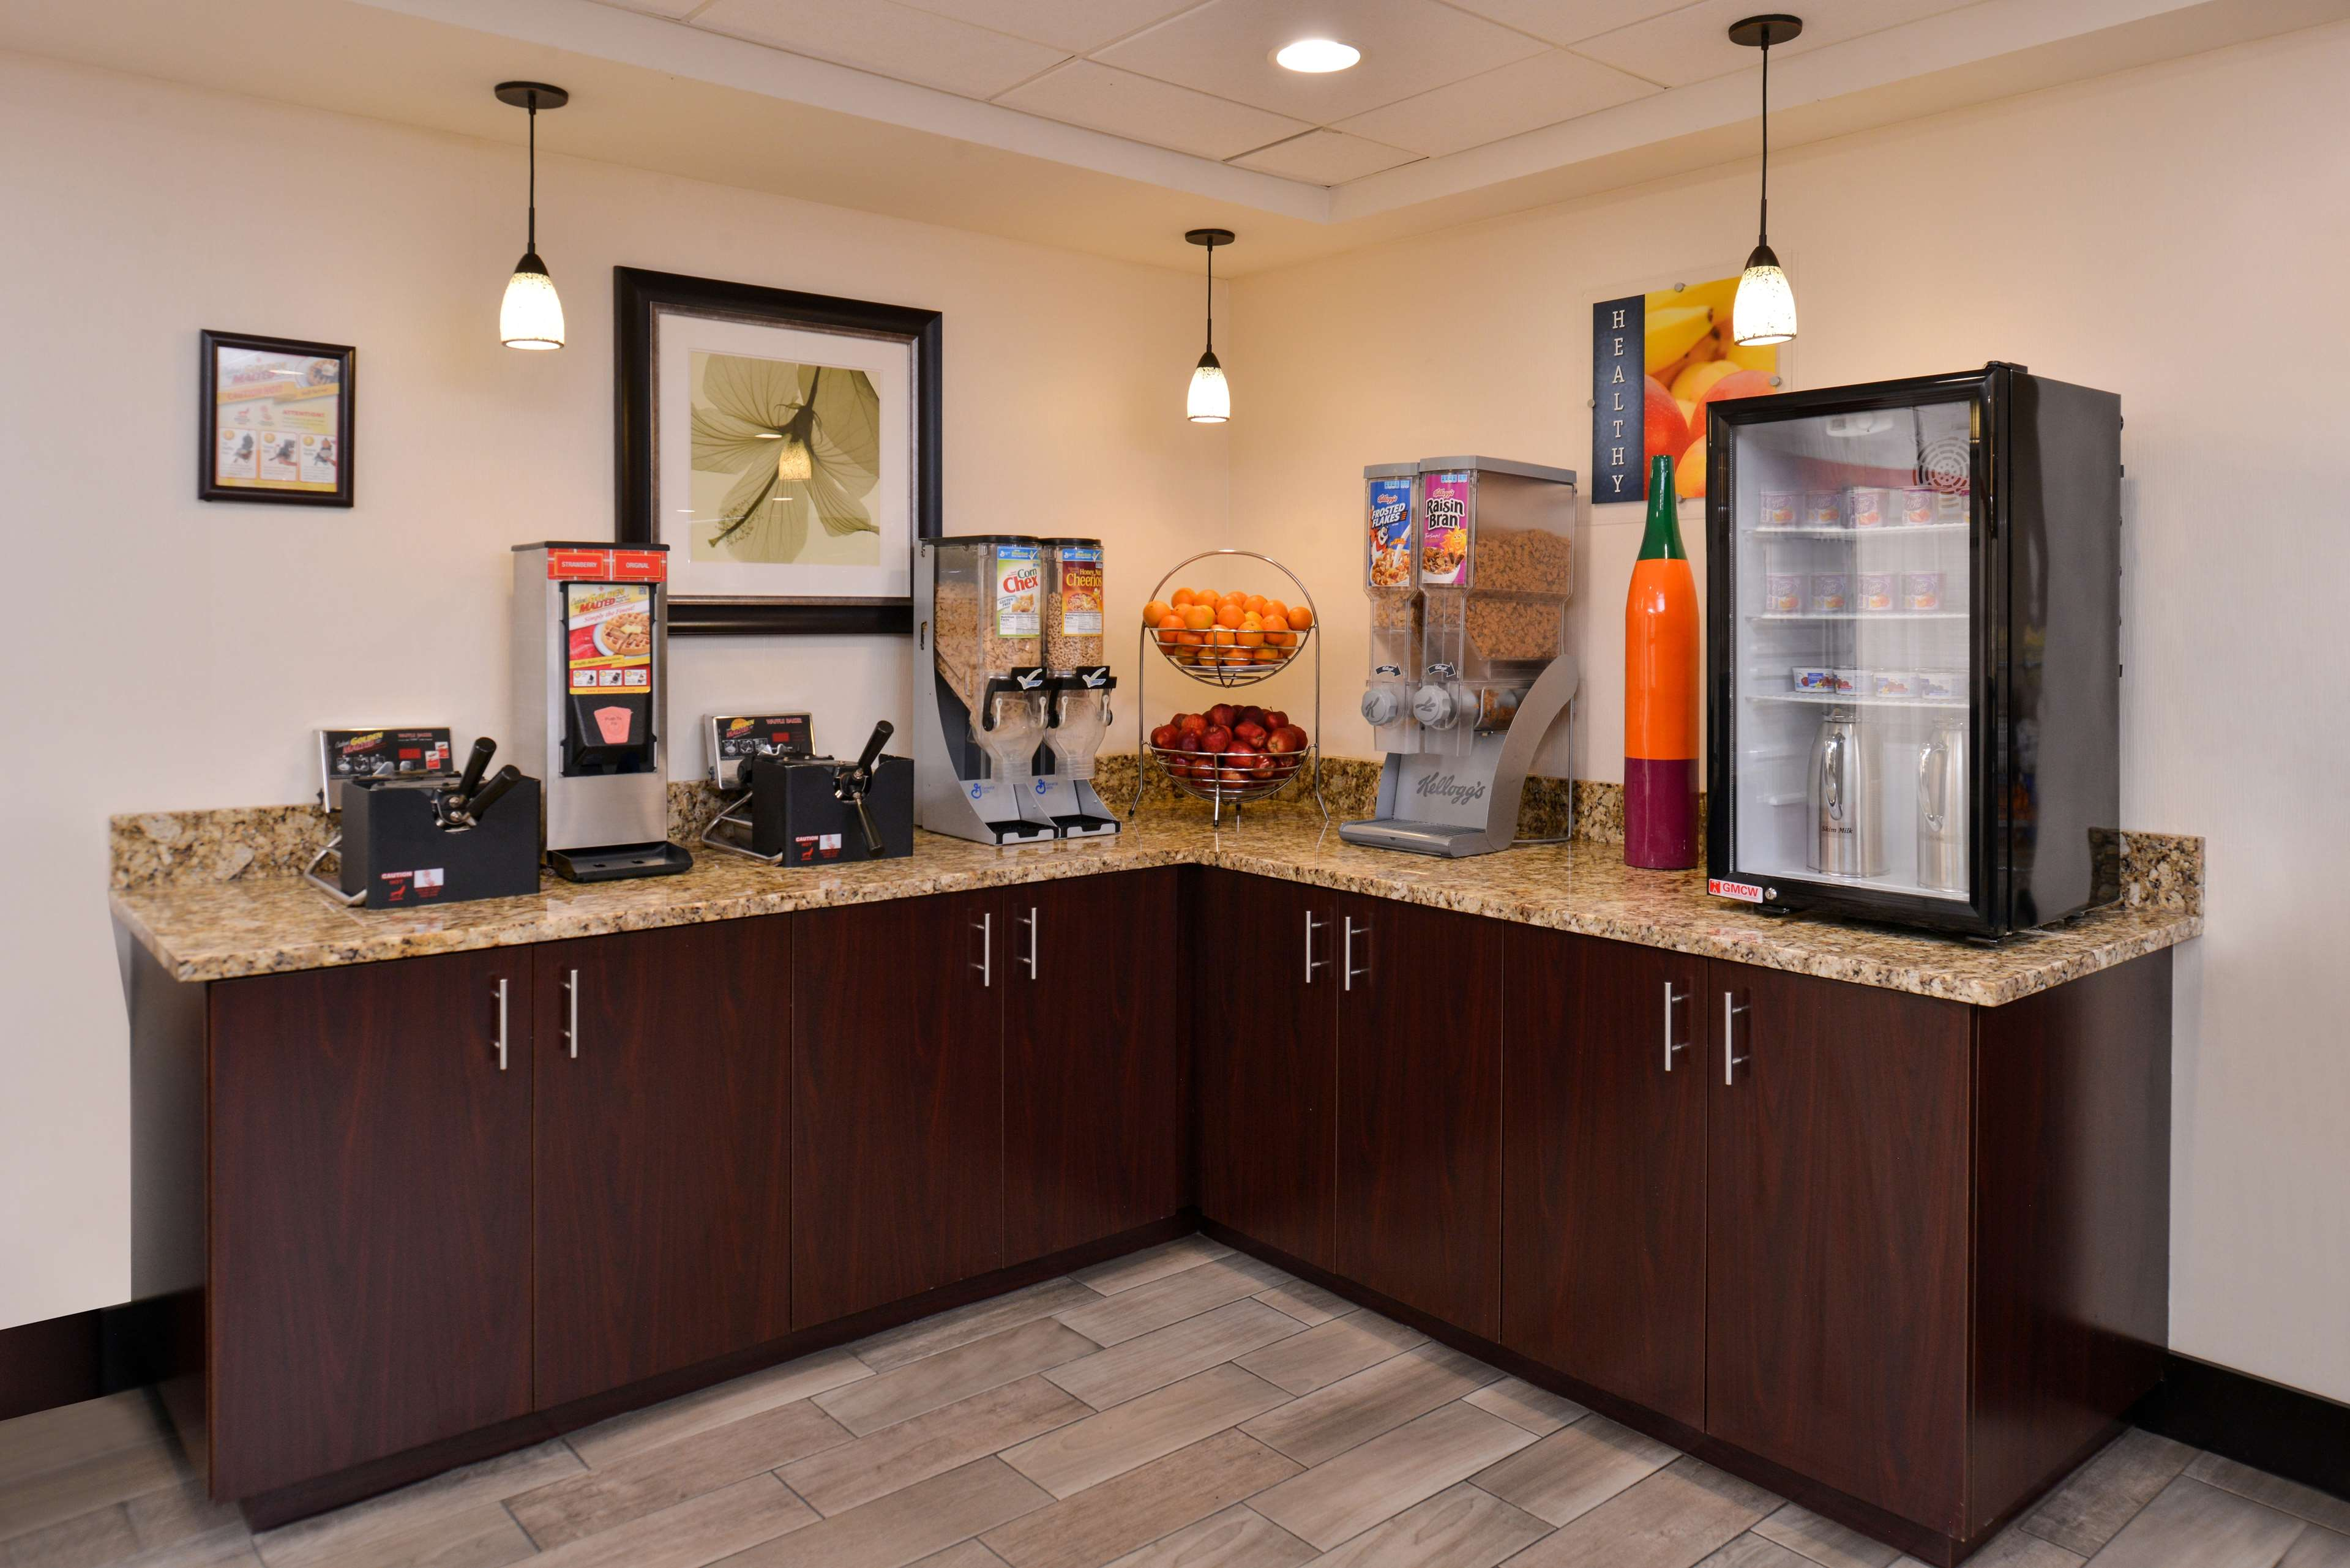 Best Western Plus Chicagoland - Countryside image 19